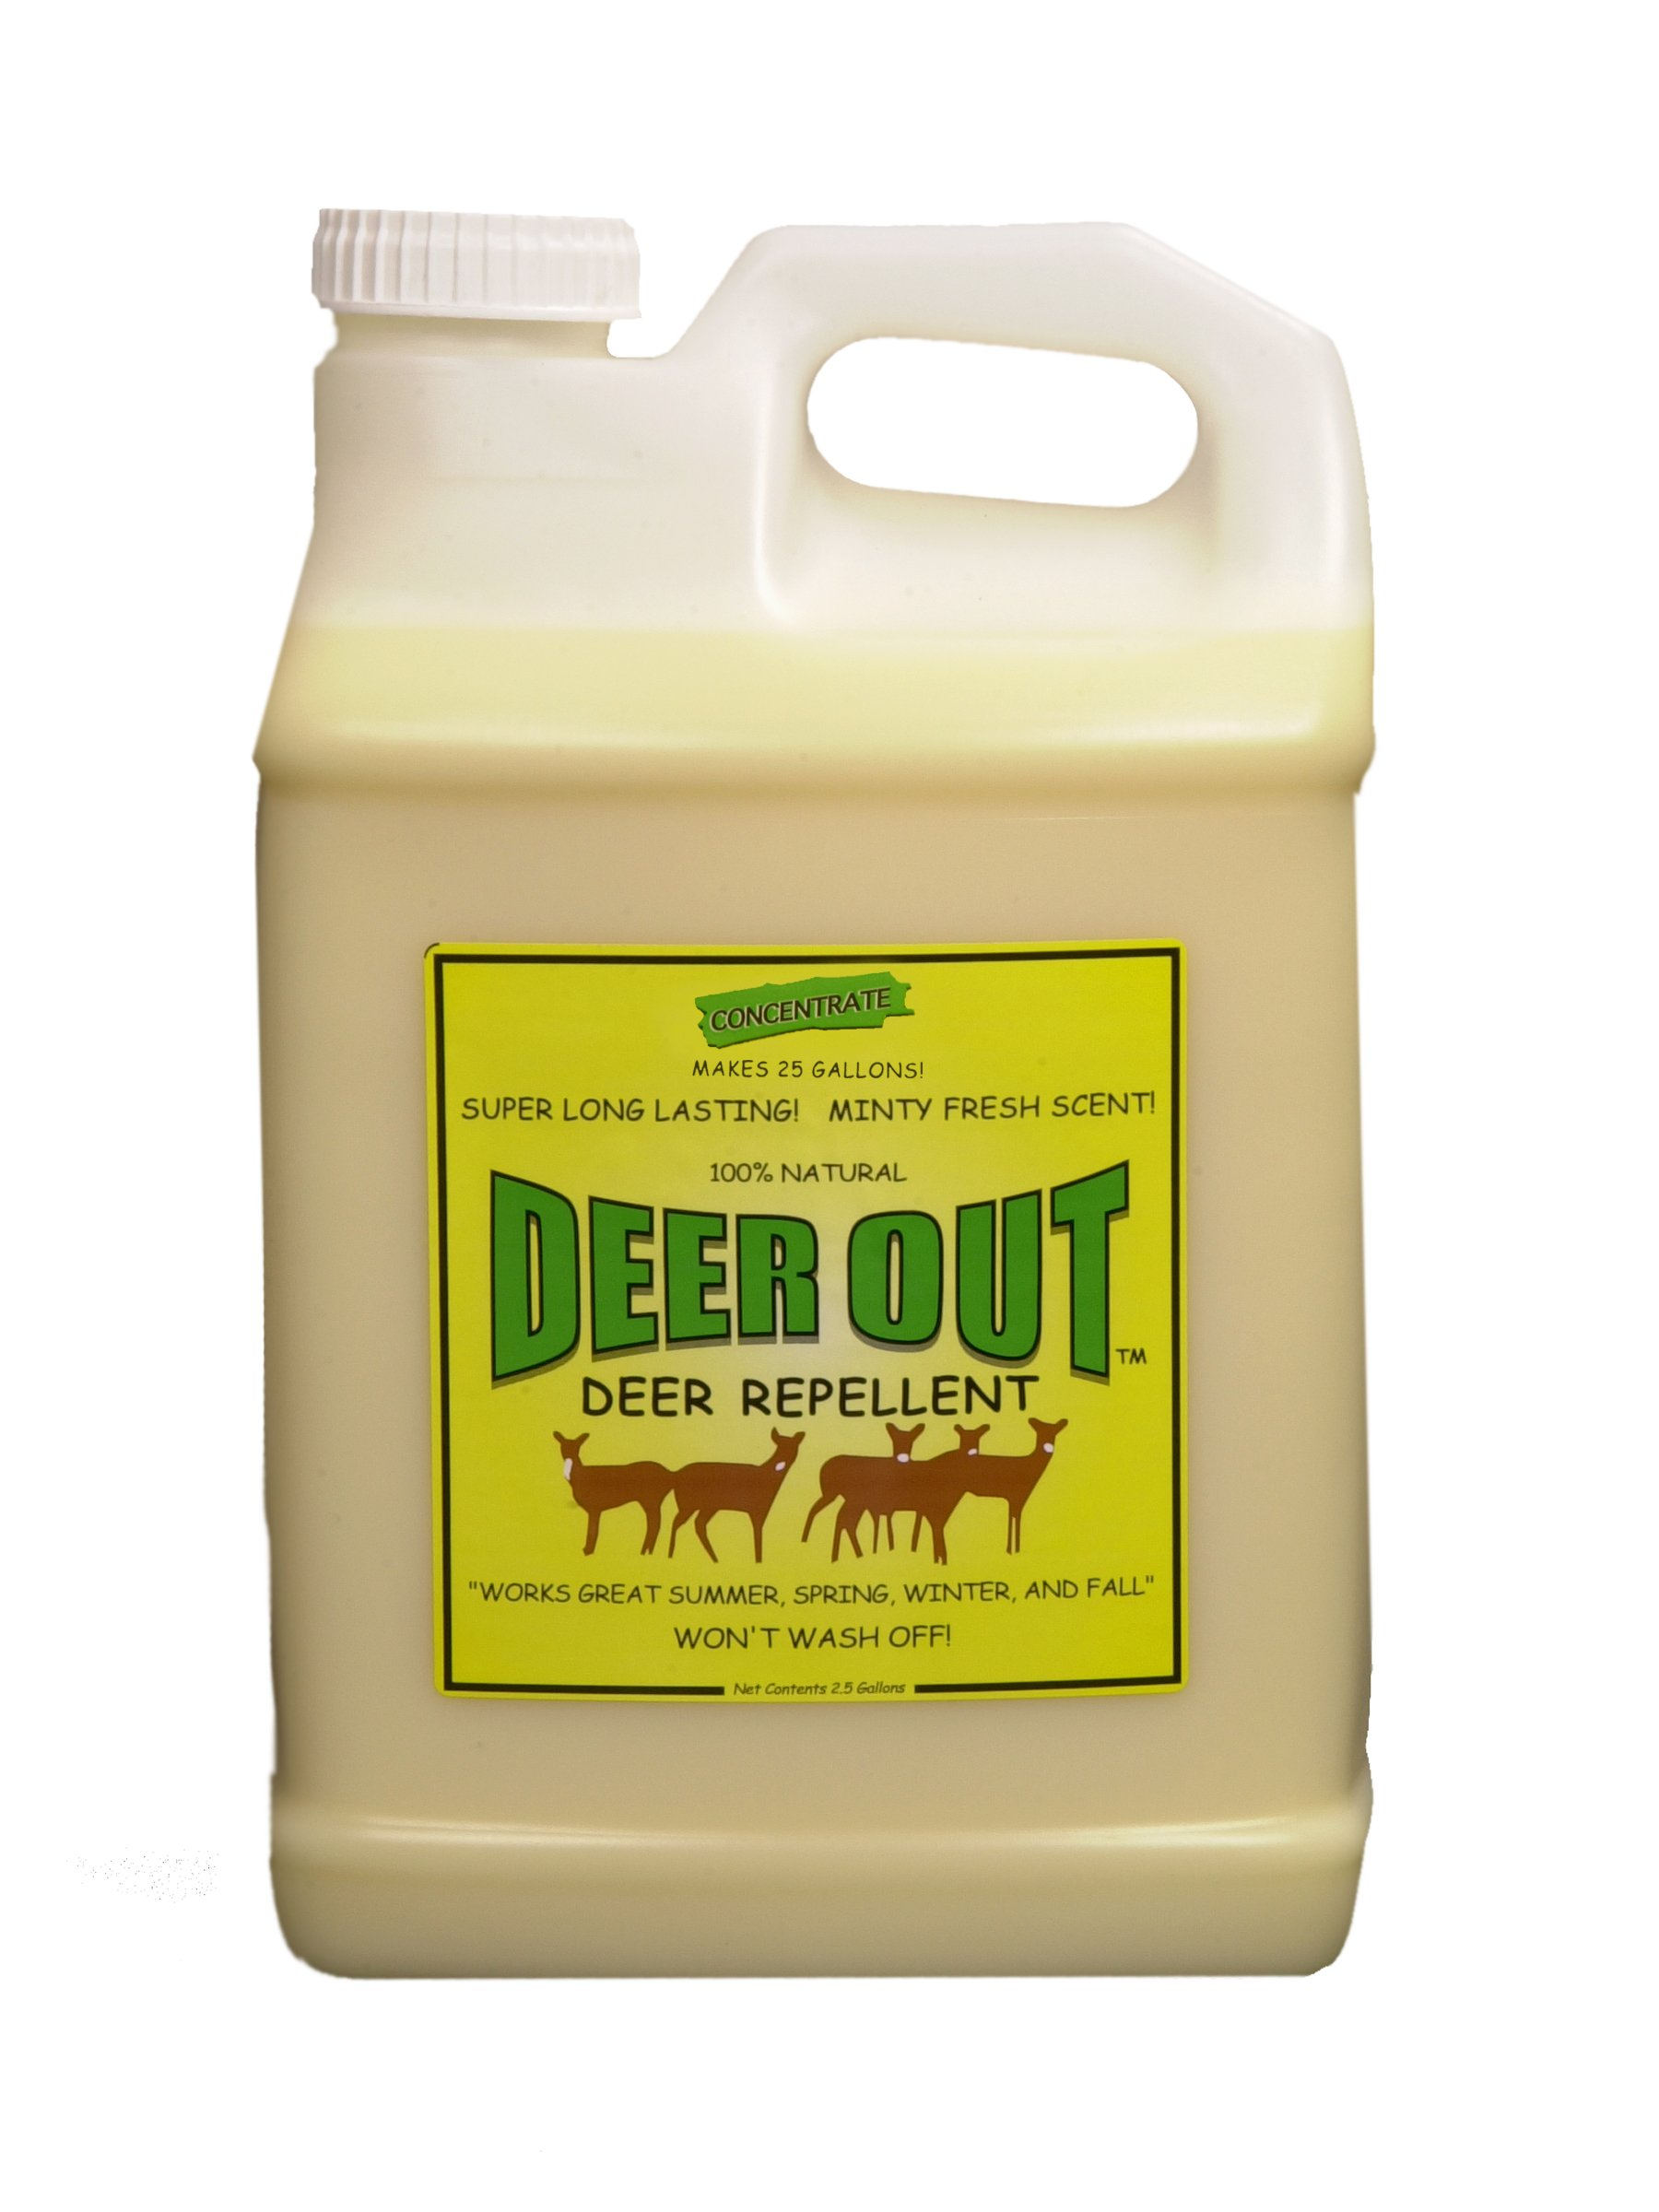 Deer Repellent: Deer Out deer repellent 2 1/2 gallon concentrate by Deer Out